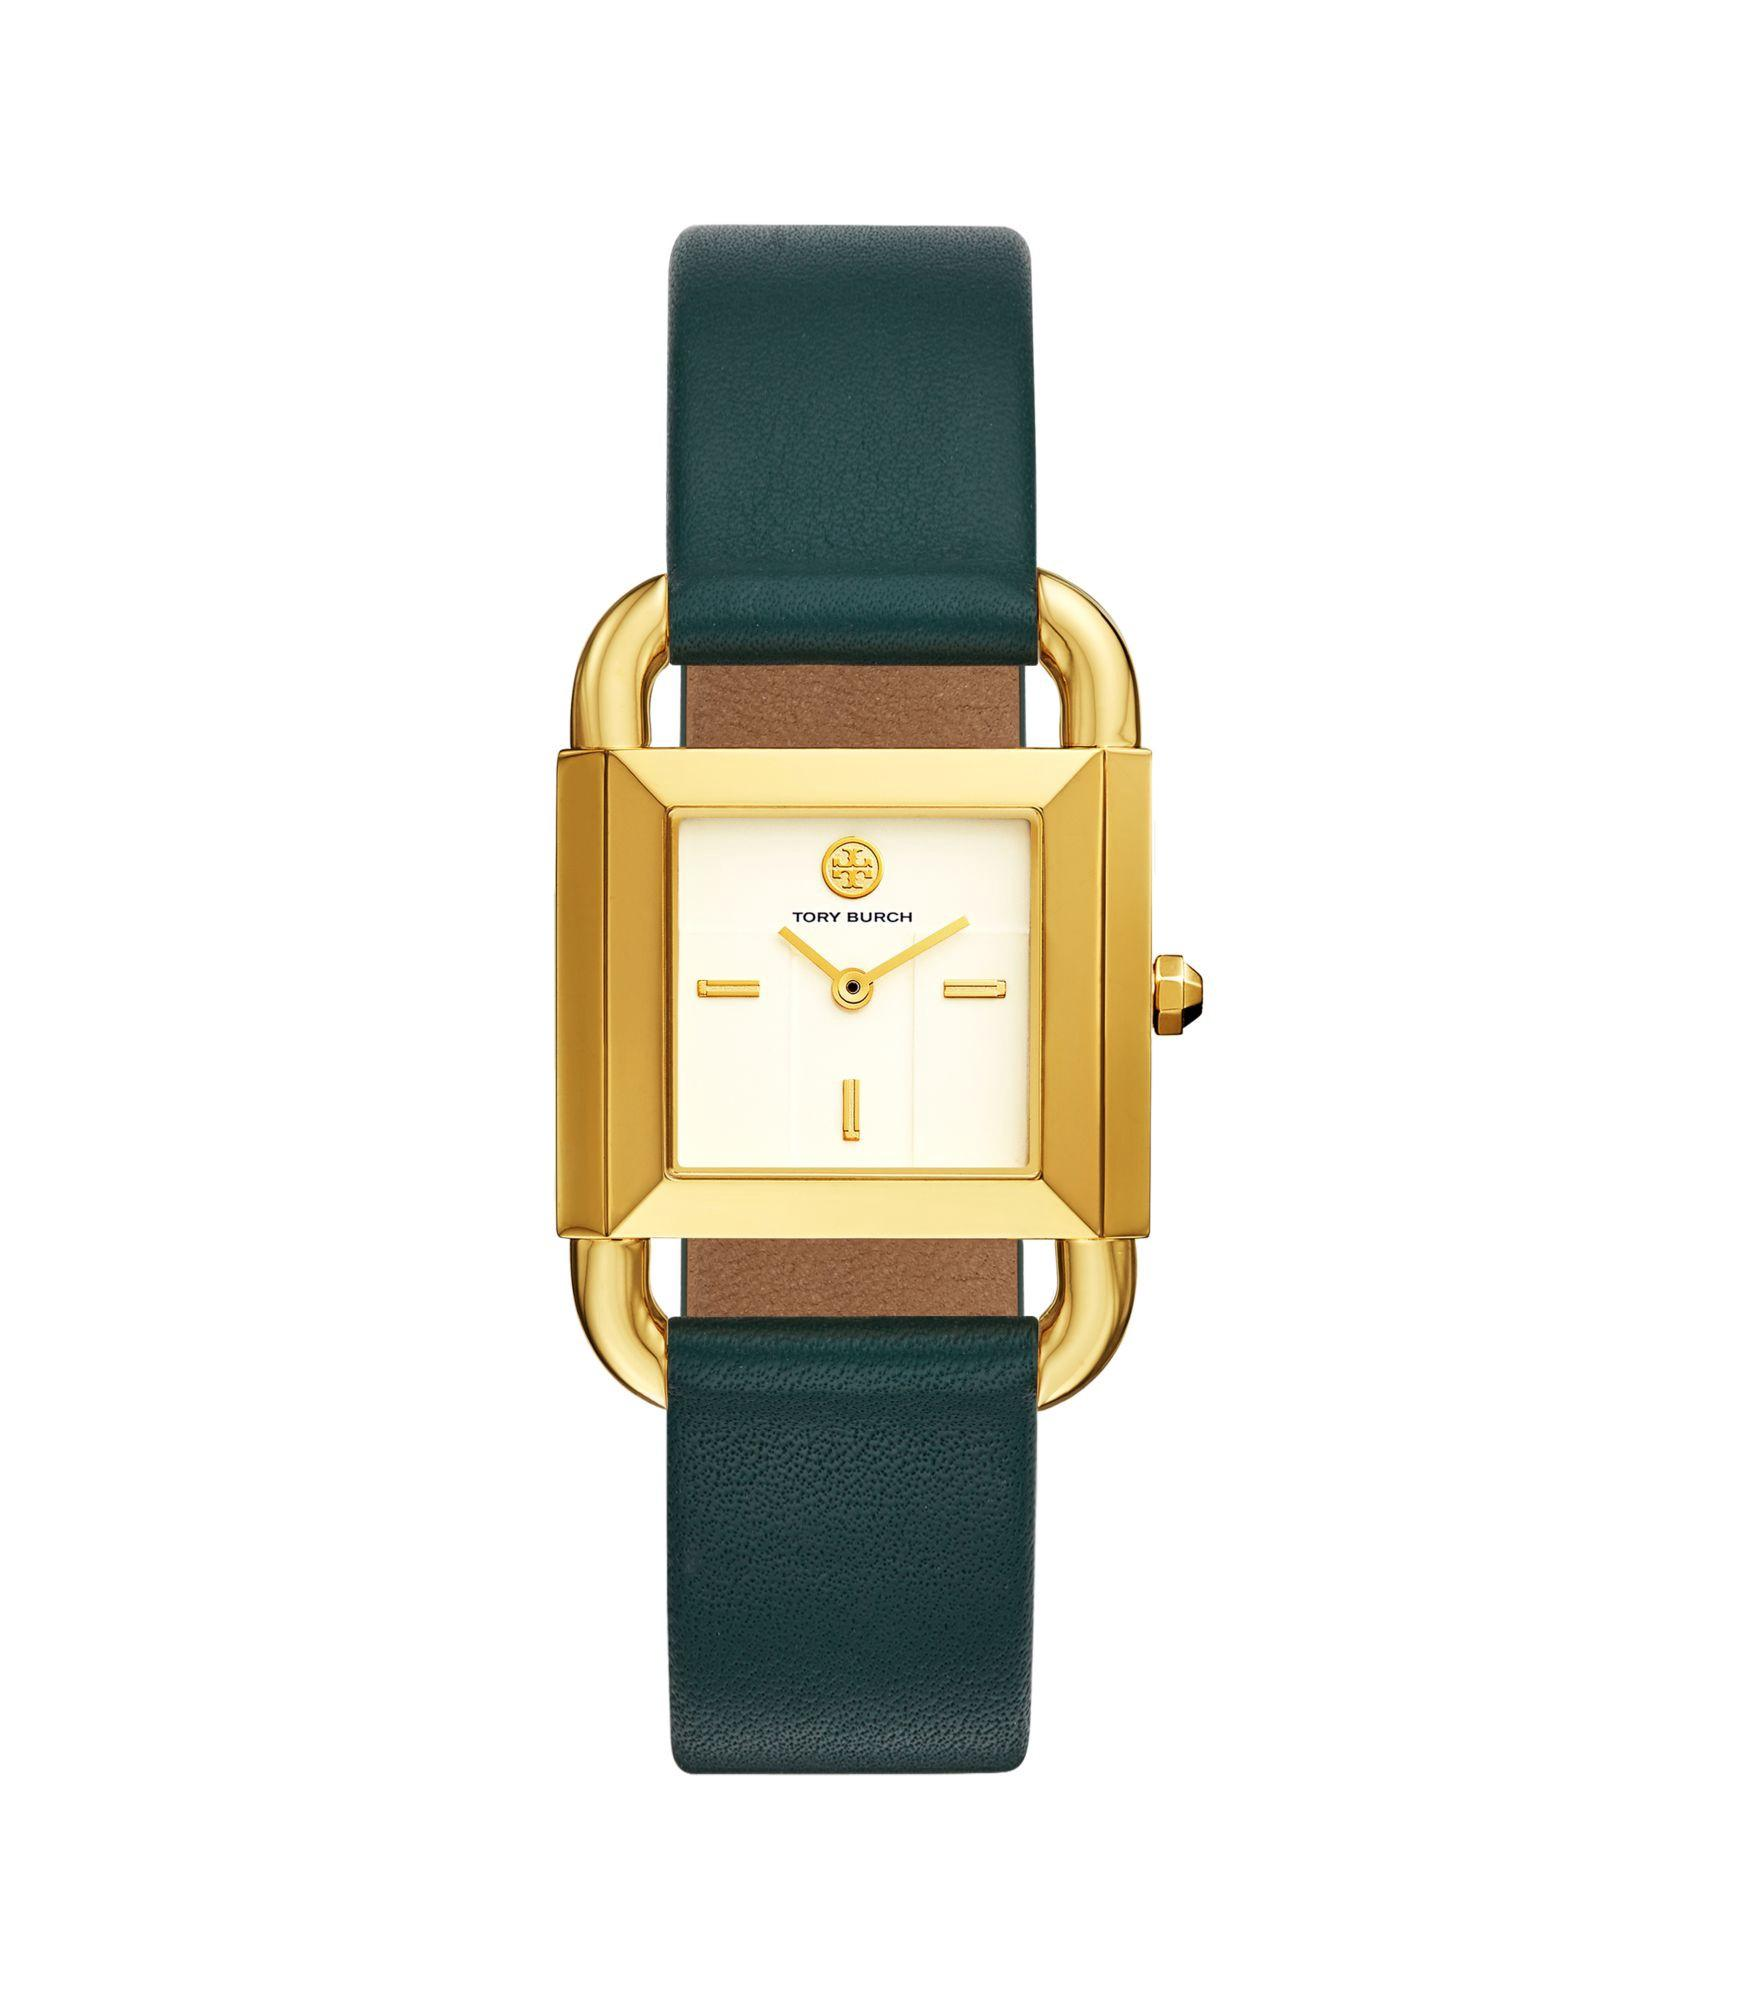 Tory Burch Phipps Watch, Green Leather/gold-tone, 29 X 41 Mm In Valley Forge Green/gold/ivory